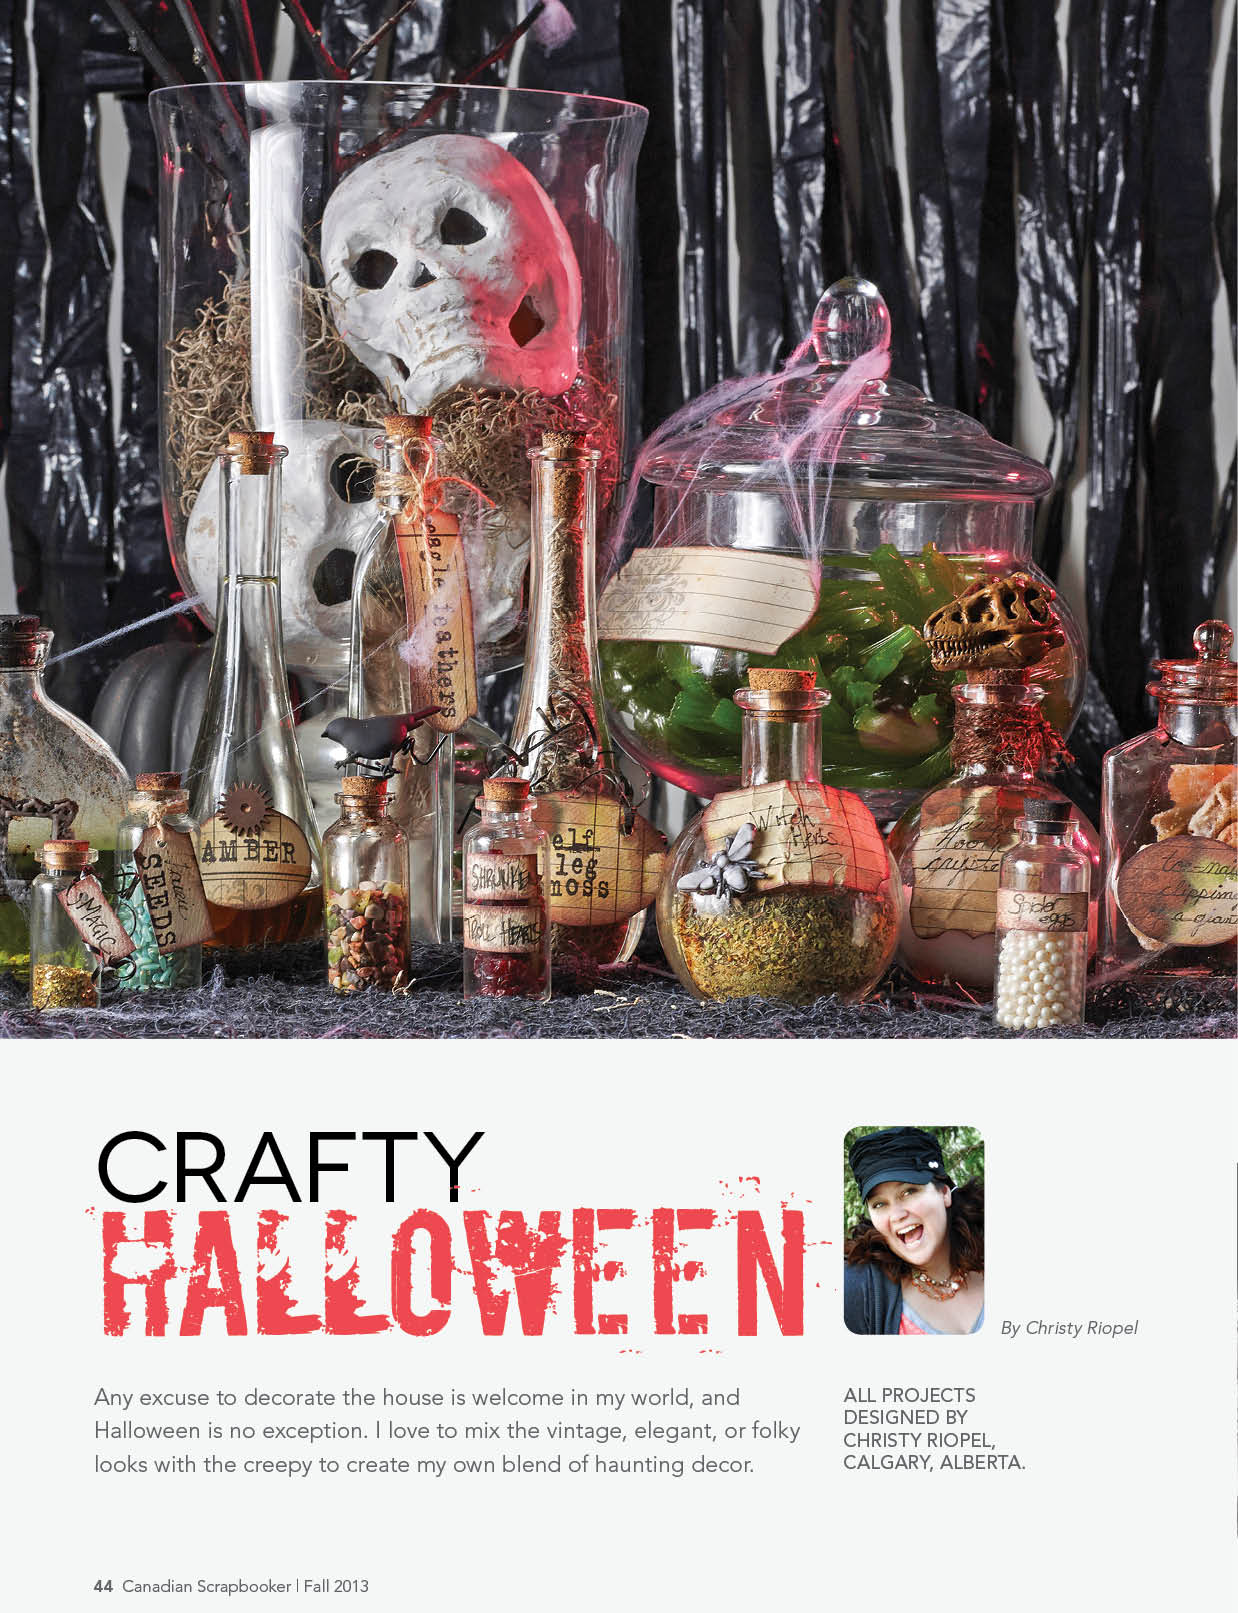 Crafty Halloween Decorations | Halloween DIY Decorations | Designed by Christy Riopel | Creative Scrapbooker Magazine #scrapbooking #halloween #crafts